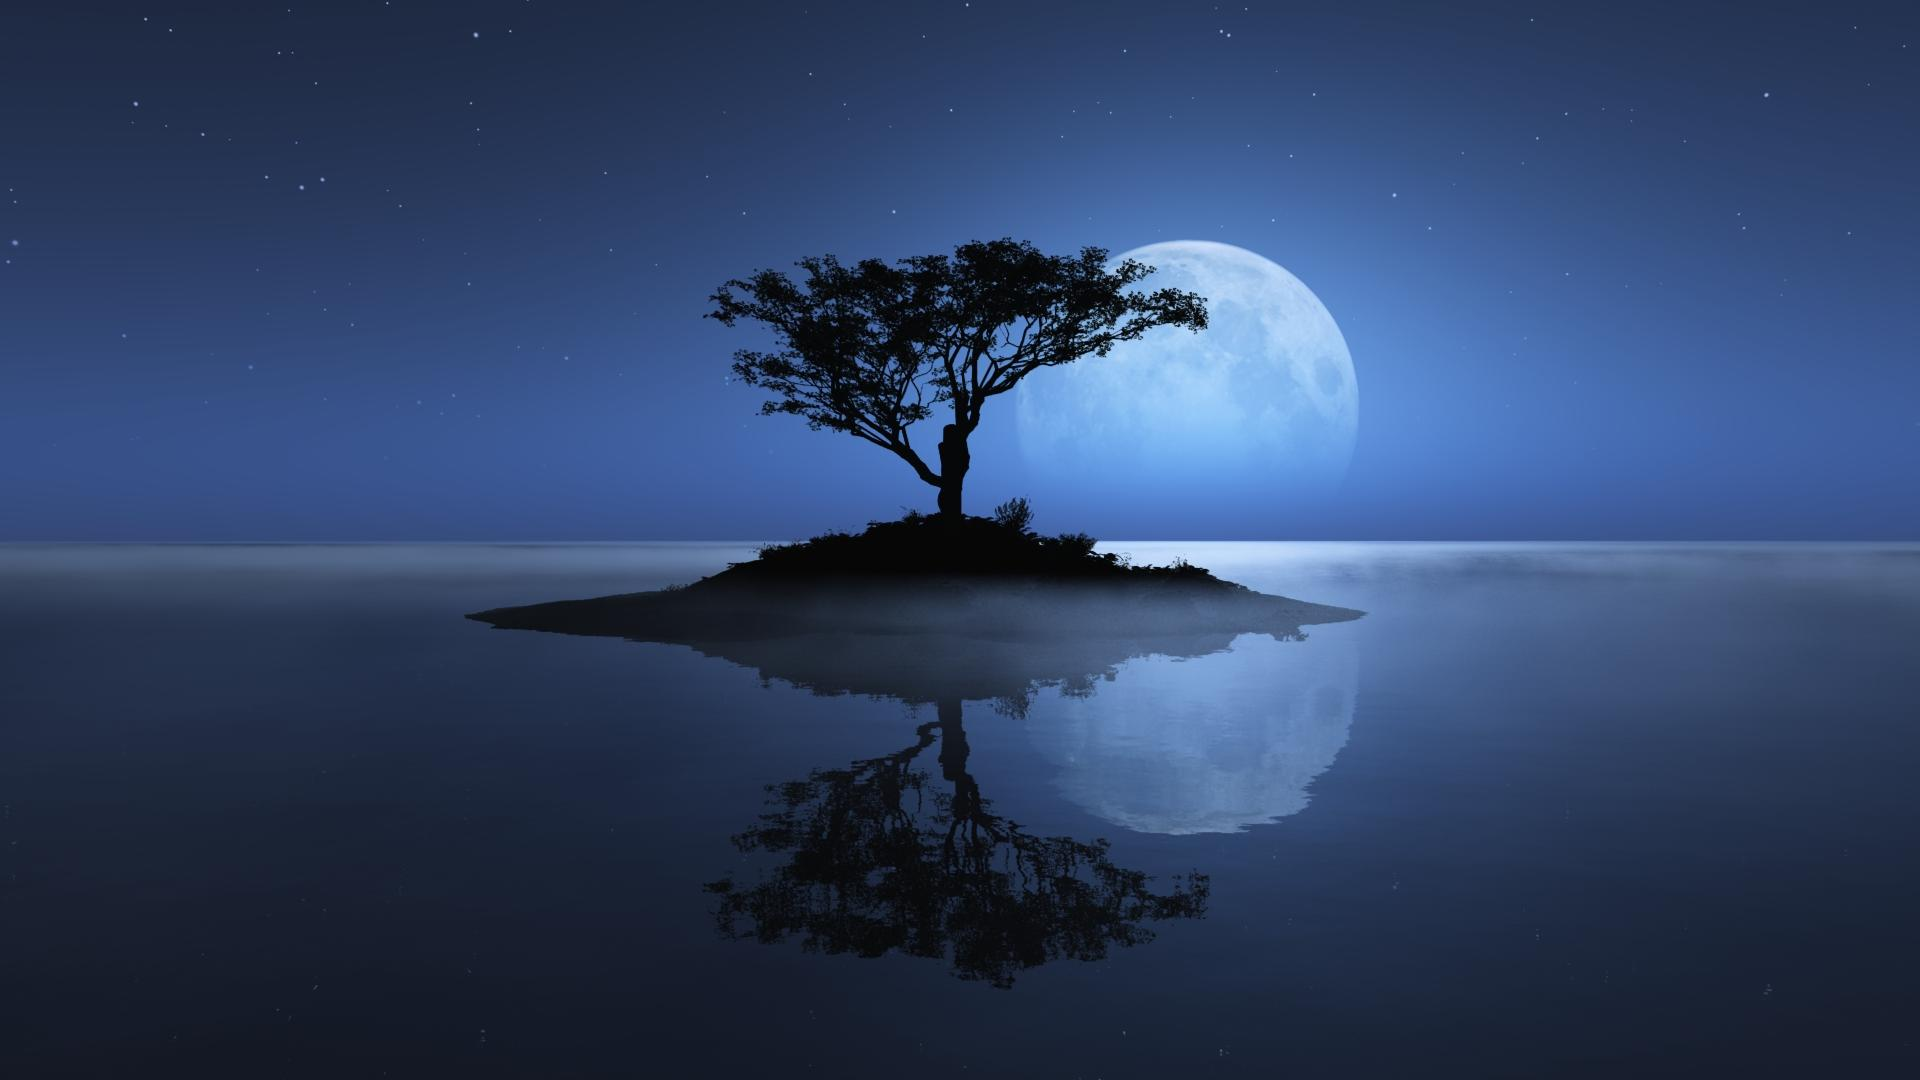 Poem Moon And Moon S Gleam These works have one thing in common: poem moon and moon s gleam